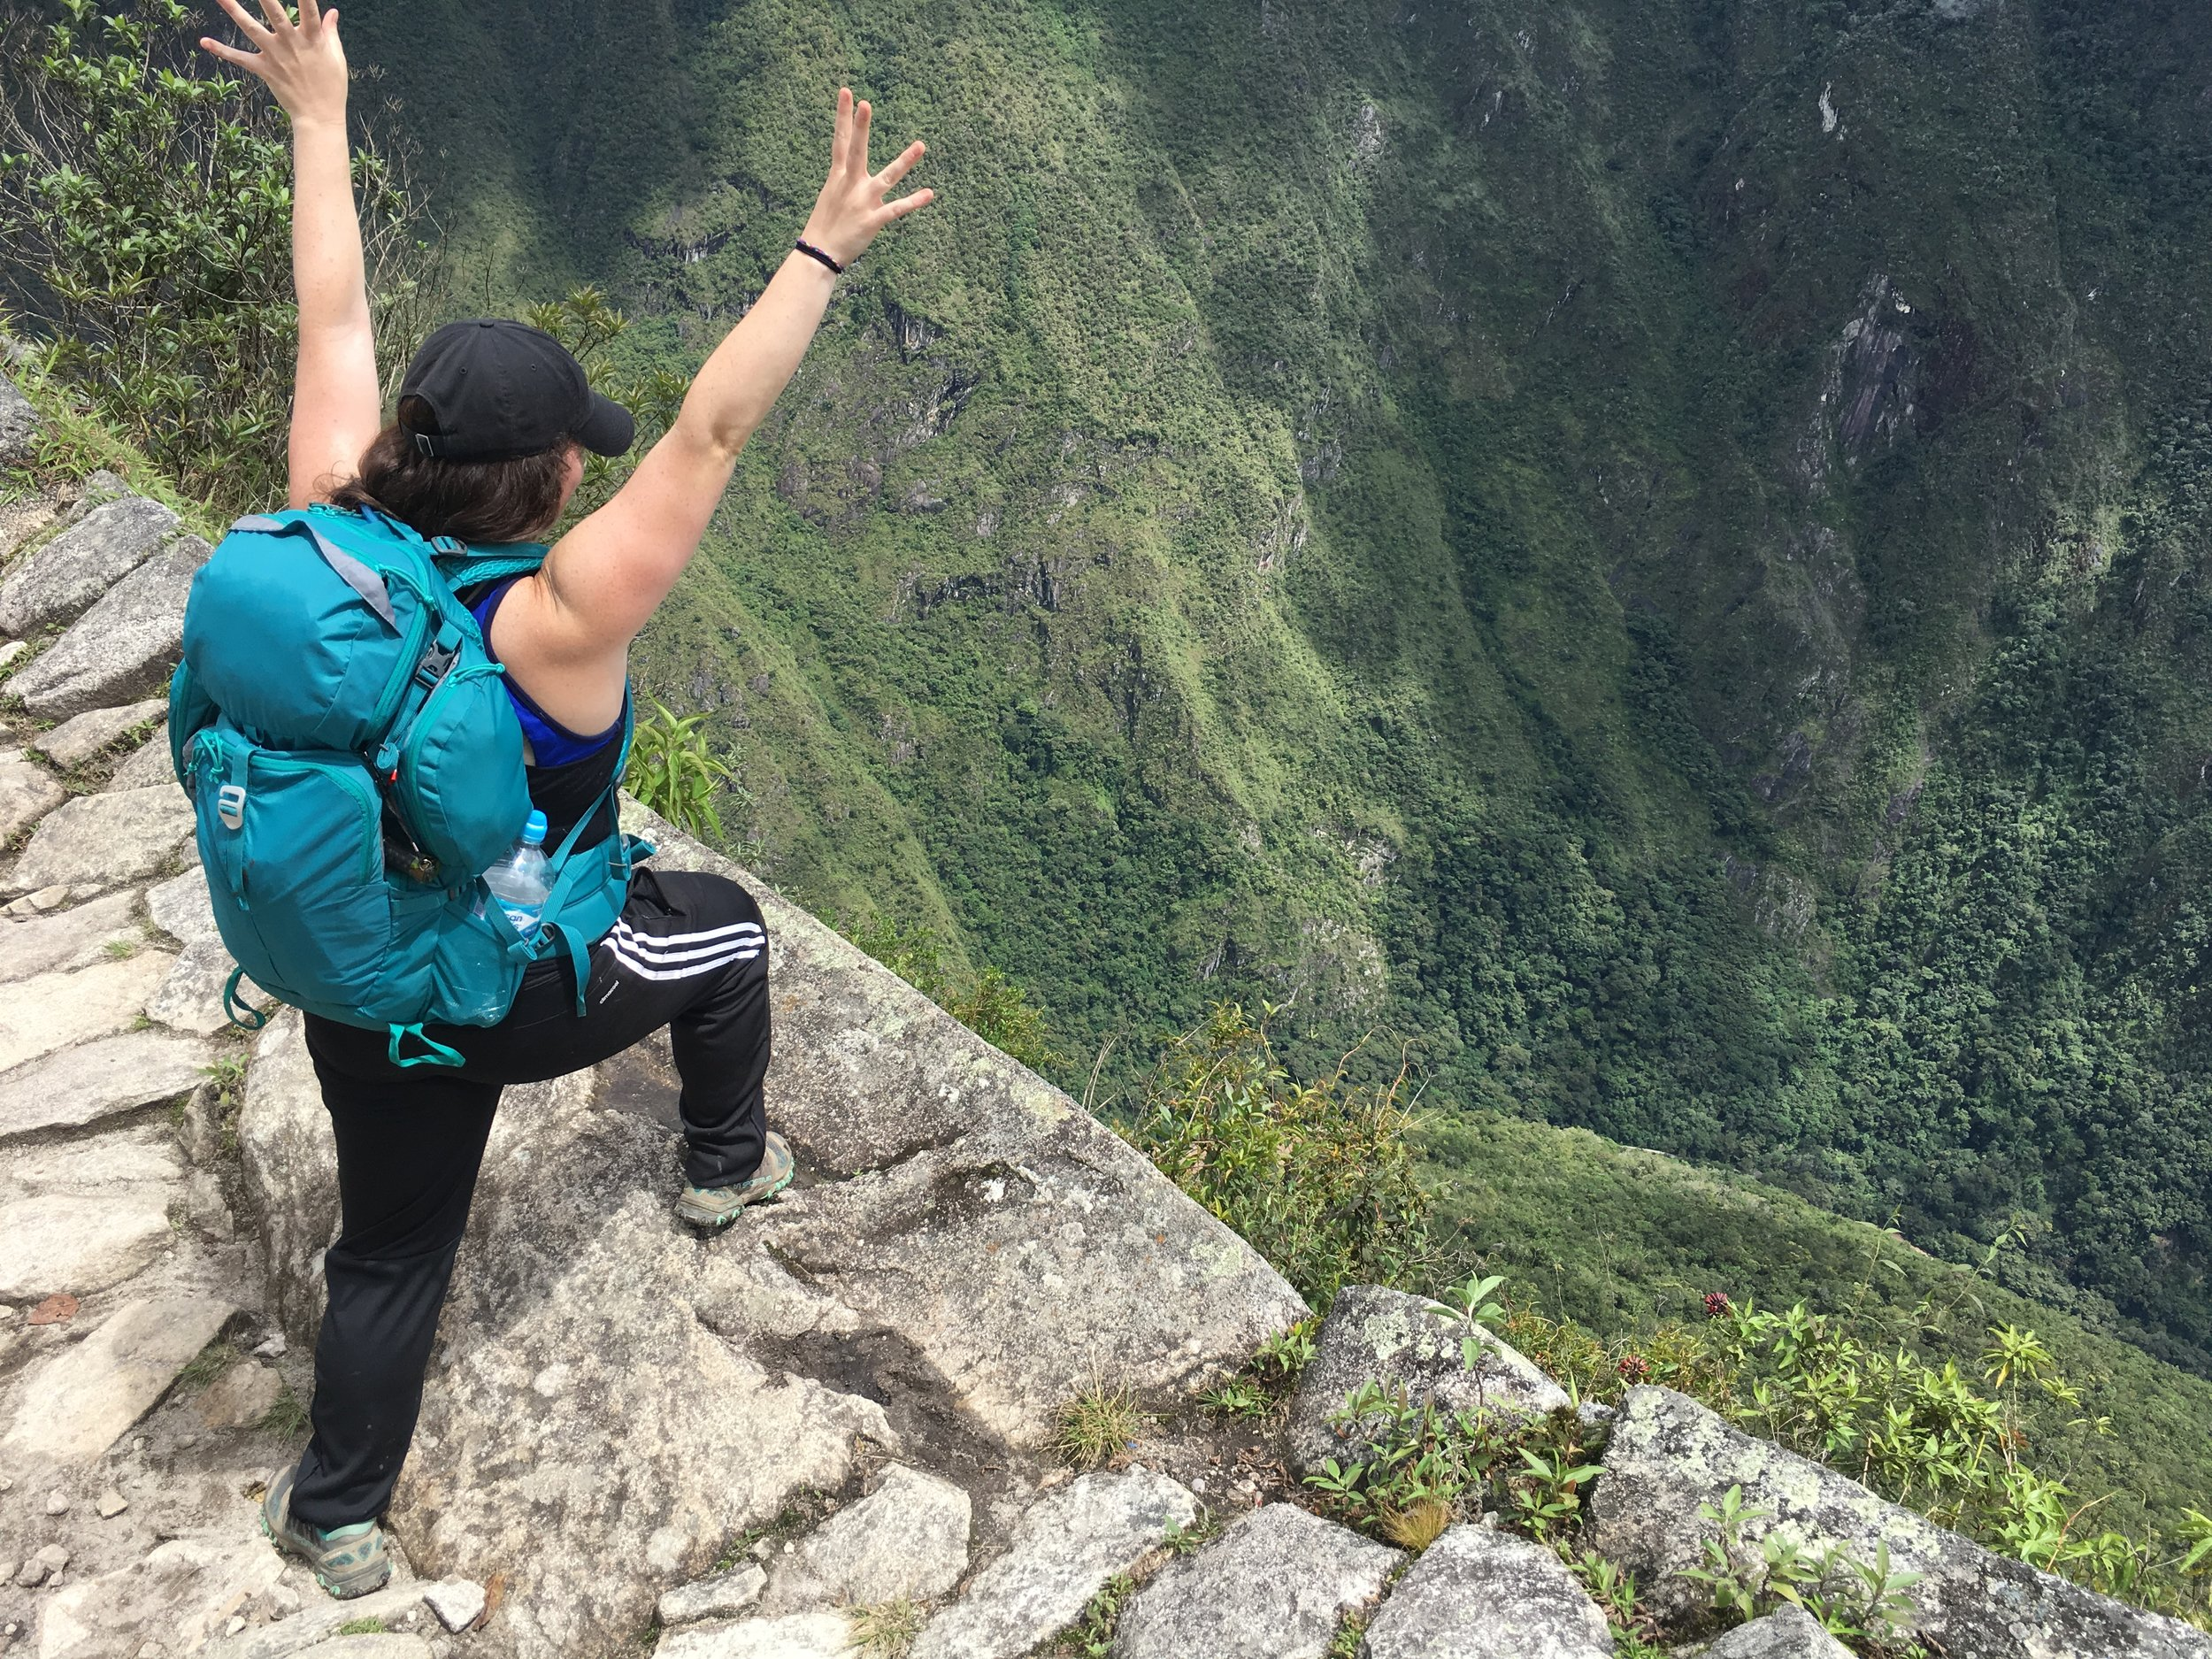 Me with my Kelty Redwing climbing Wayna Picchu after our Salkantay Trek!